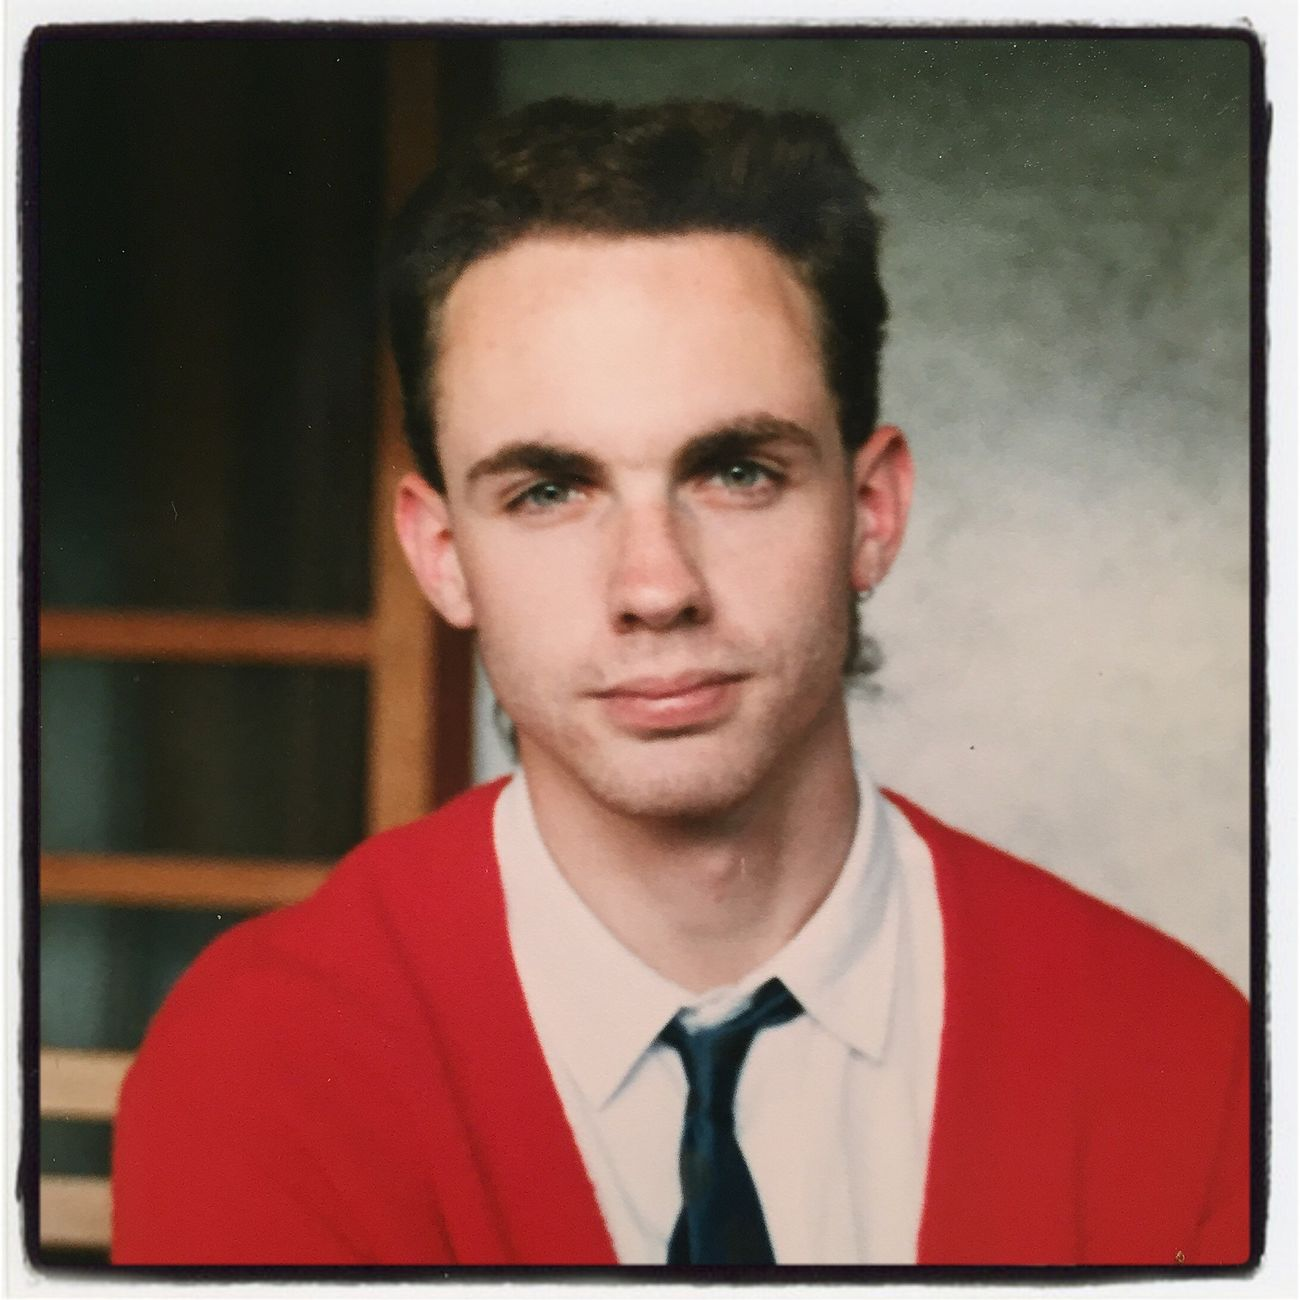 Greetings from the 1980s. I'm guessing early '86, making me 19 going on 20. Er, I mean 18 going on 19. Explains why I was a Liberal Arts major in college. Looking At Camera Portrait Real People One Person Front View Head And Shoulders Headshot Young Adult Indoors  Close-up Day